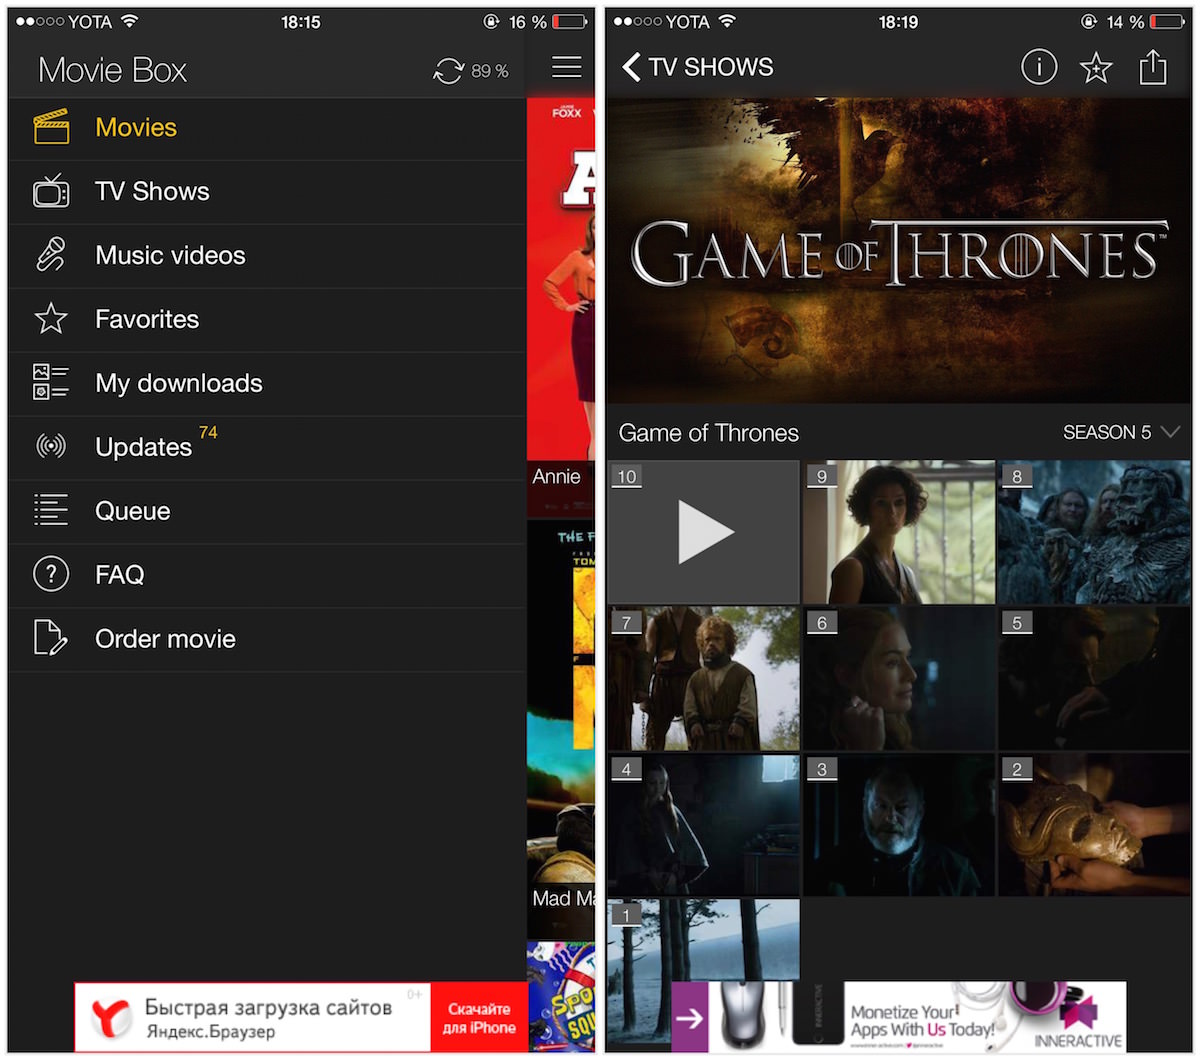 Movie Box iOS 9 iOS 8 1